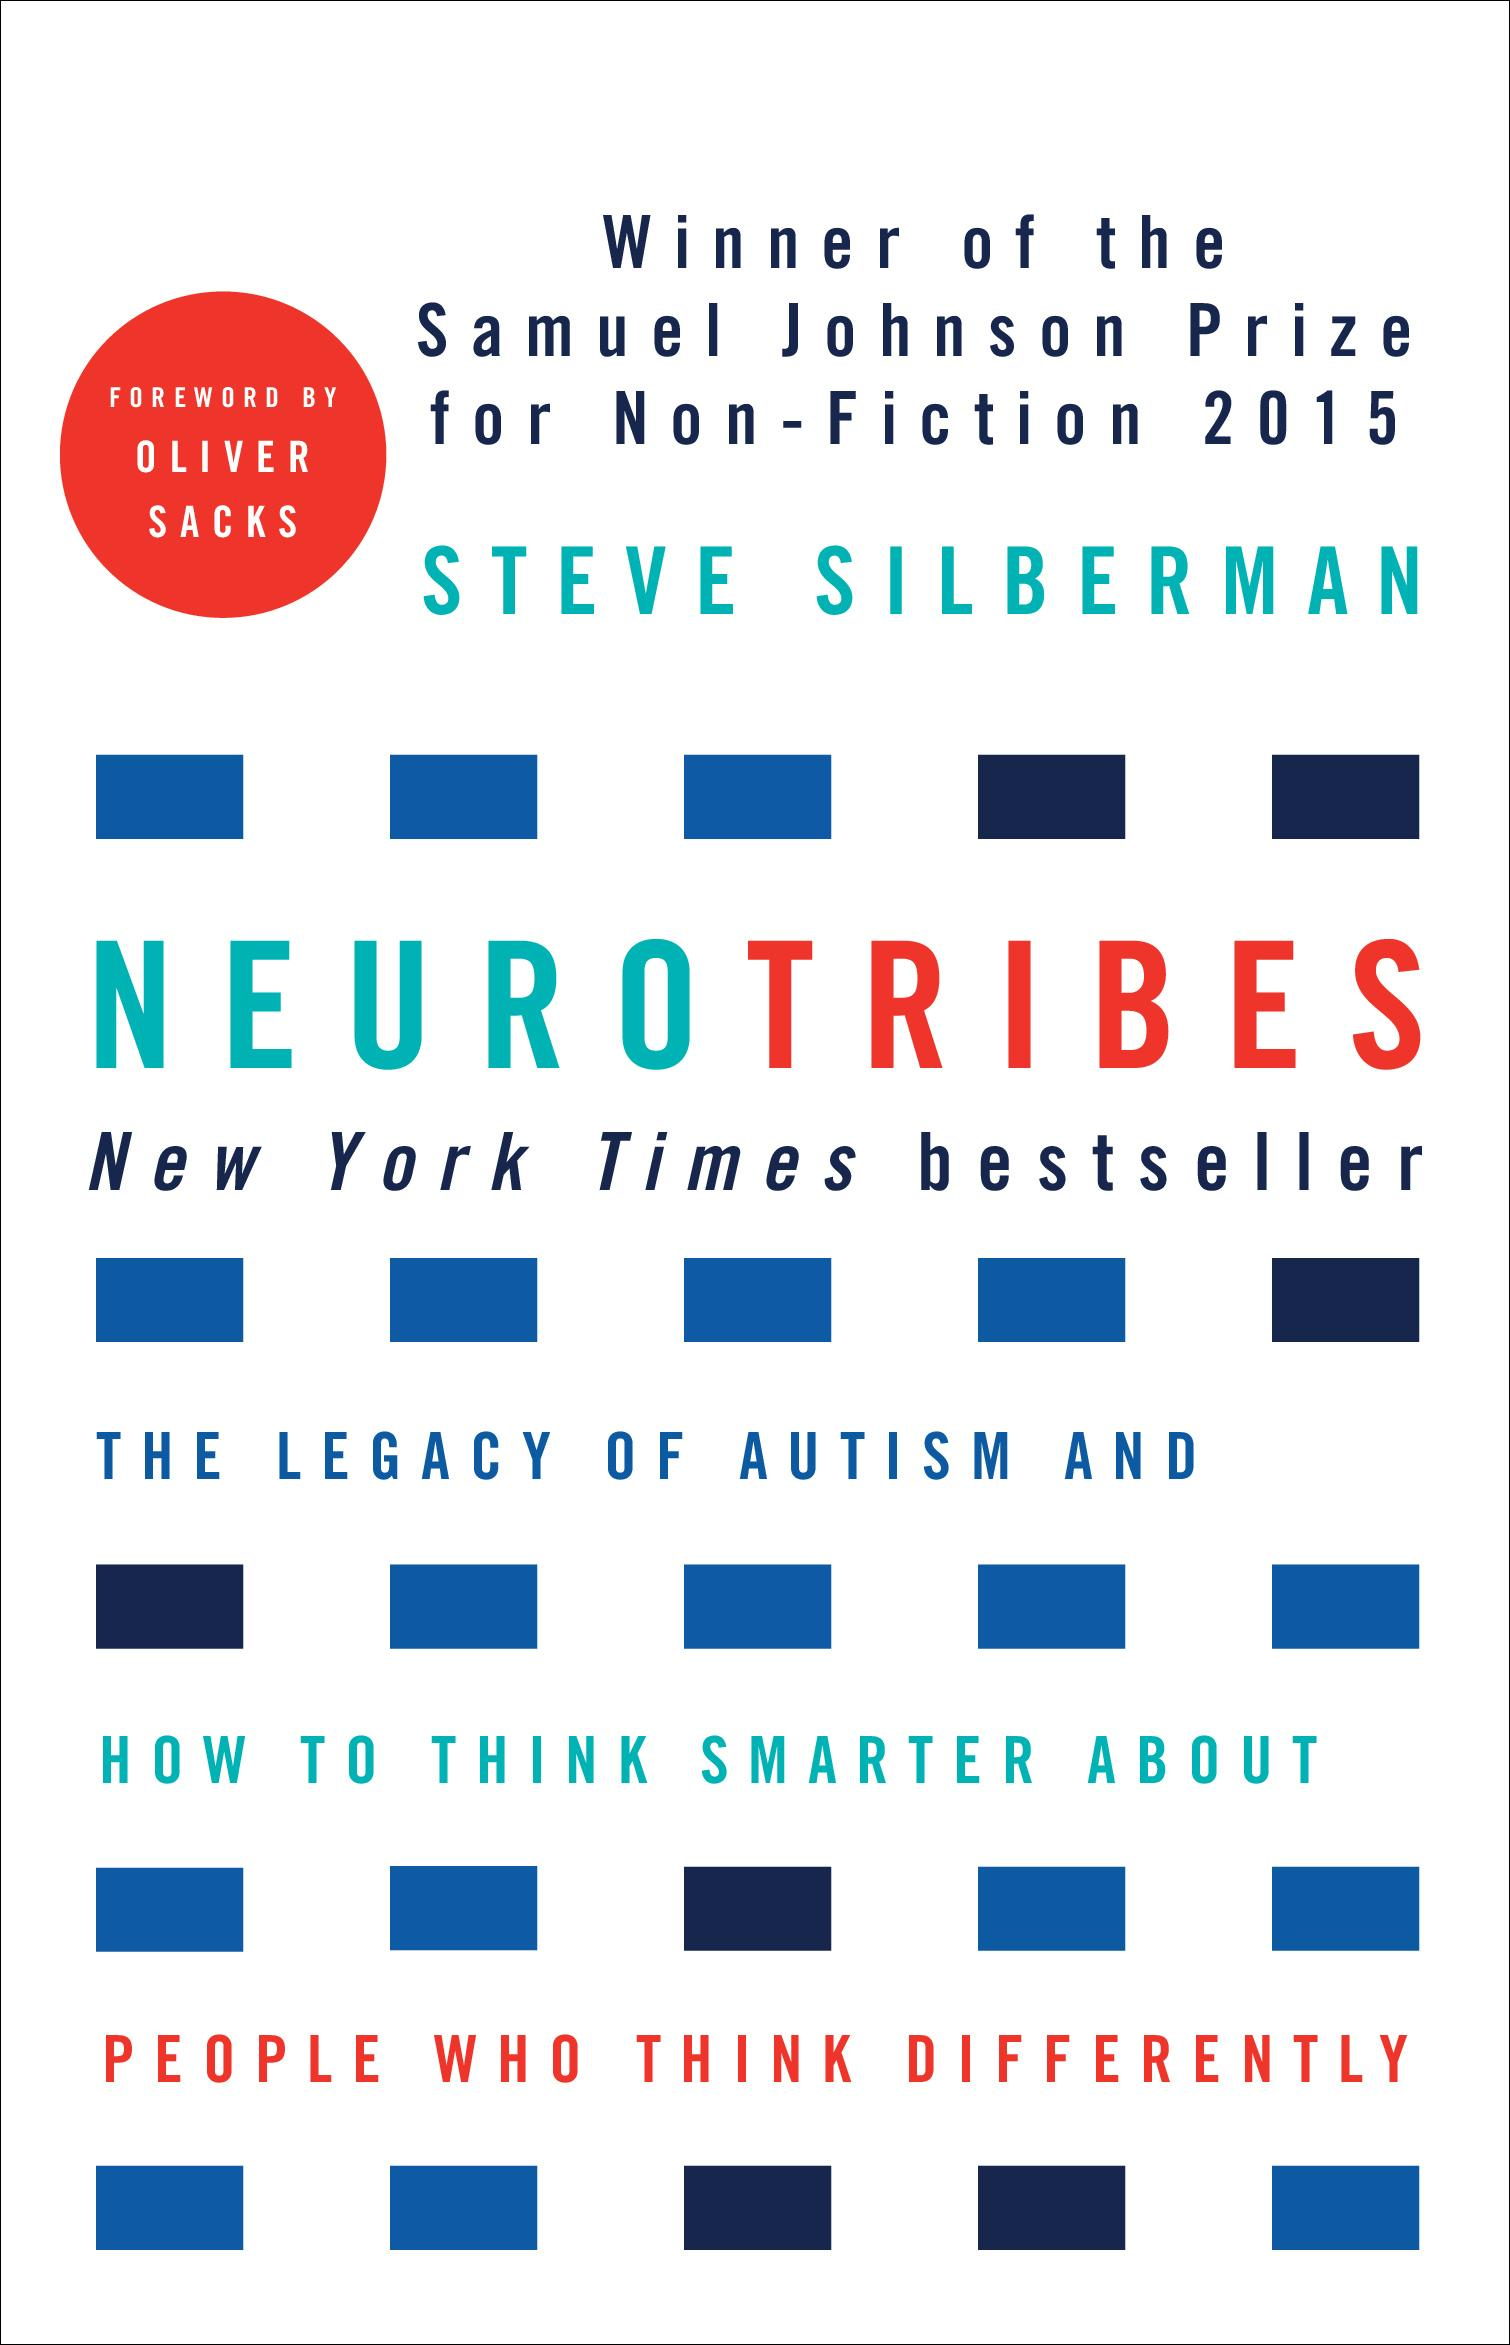 Neurotribes: The Legacy of Autism and How to Think Smarter About People WhoThinkDifferently